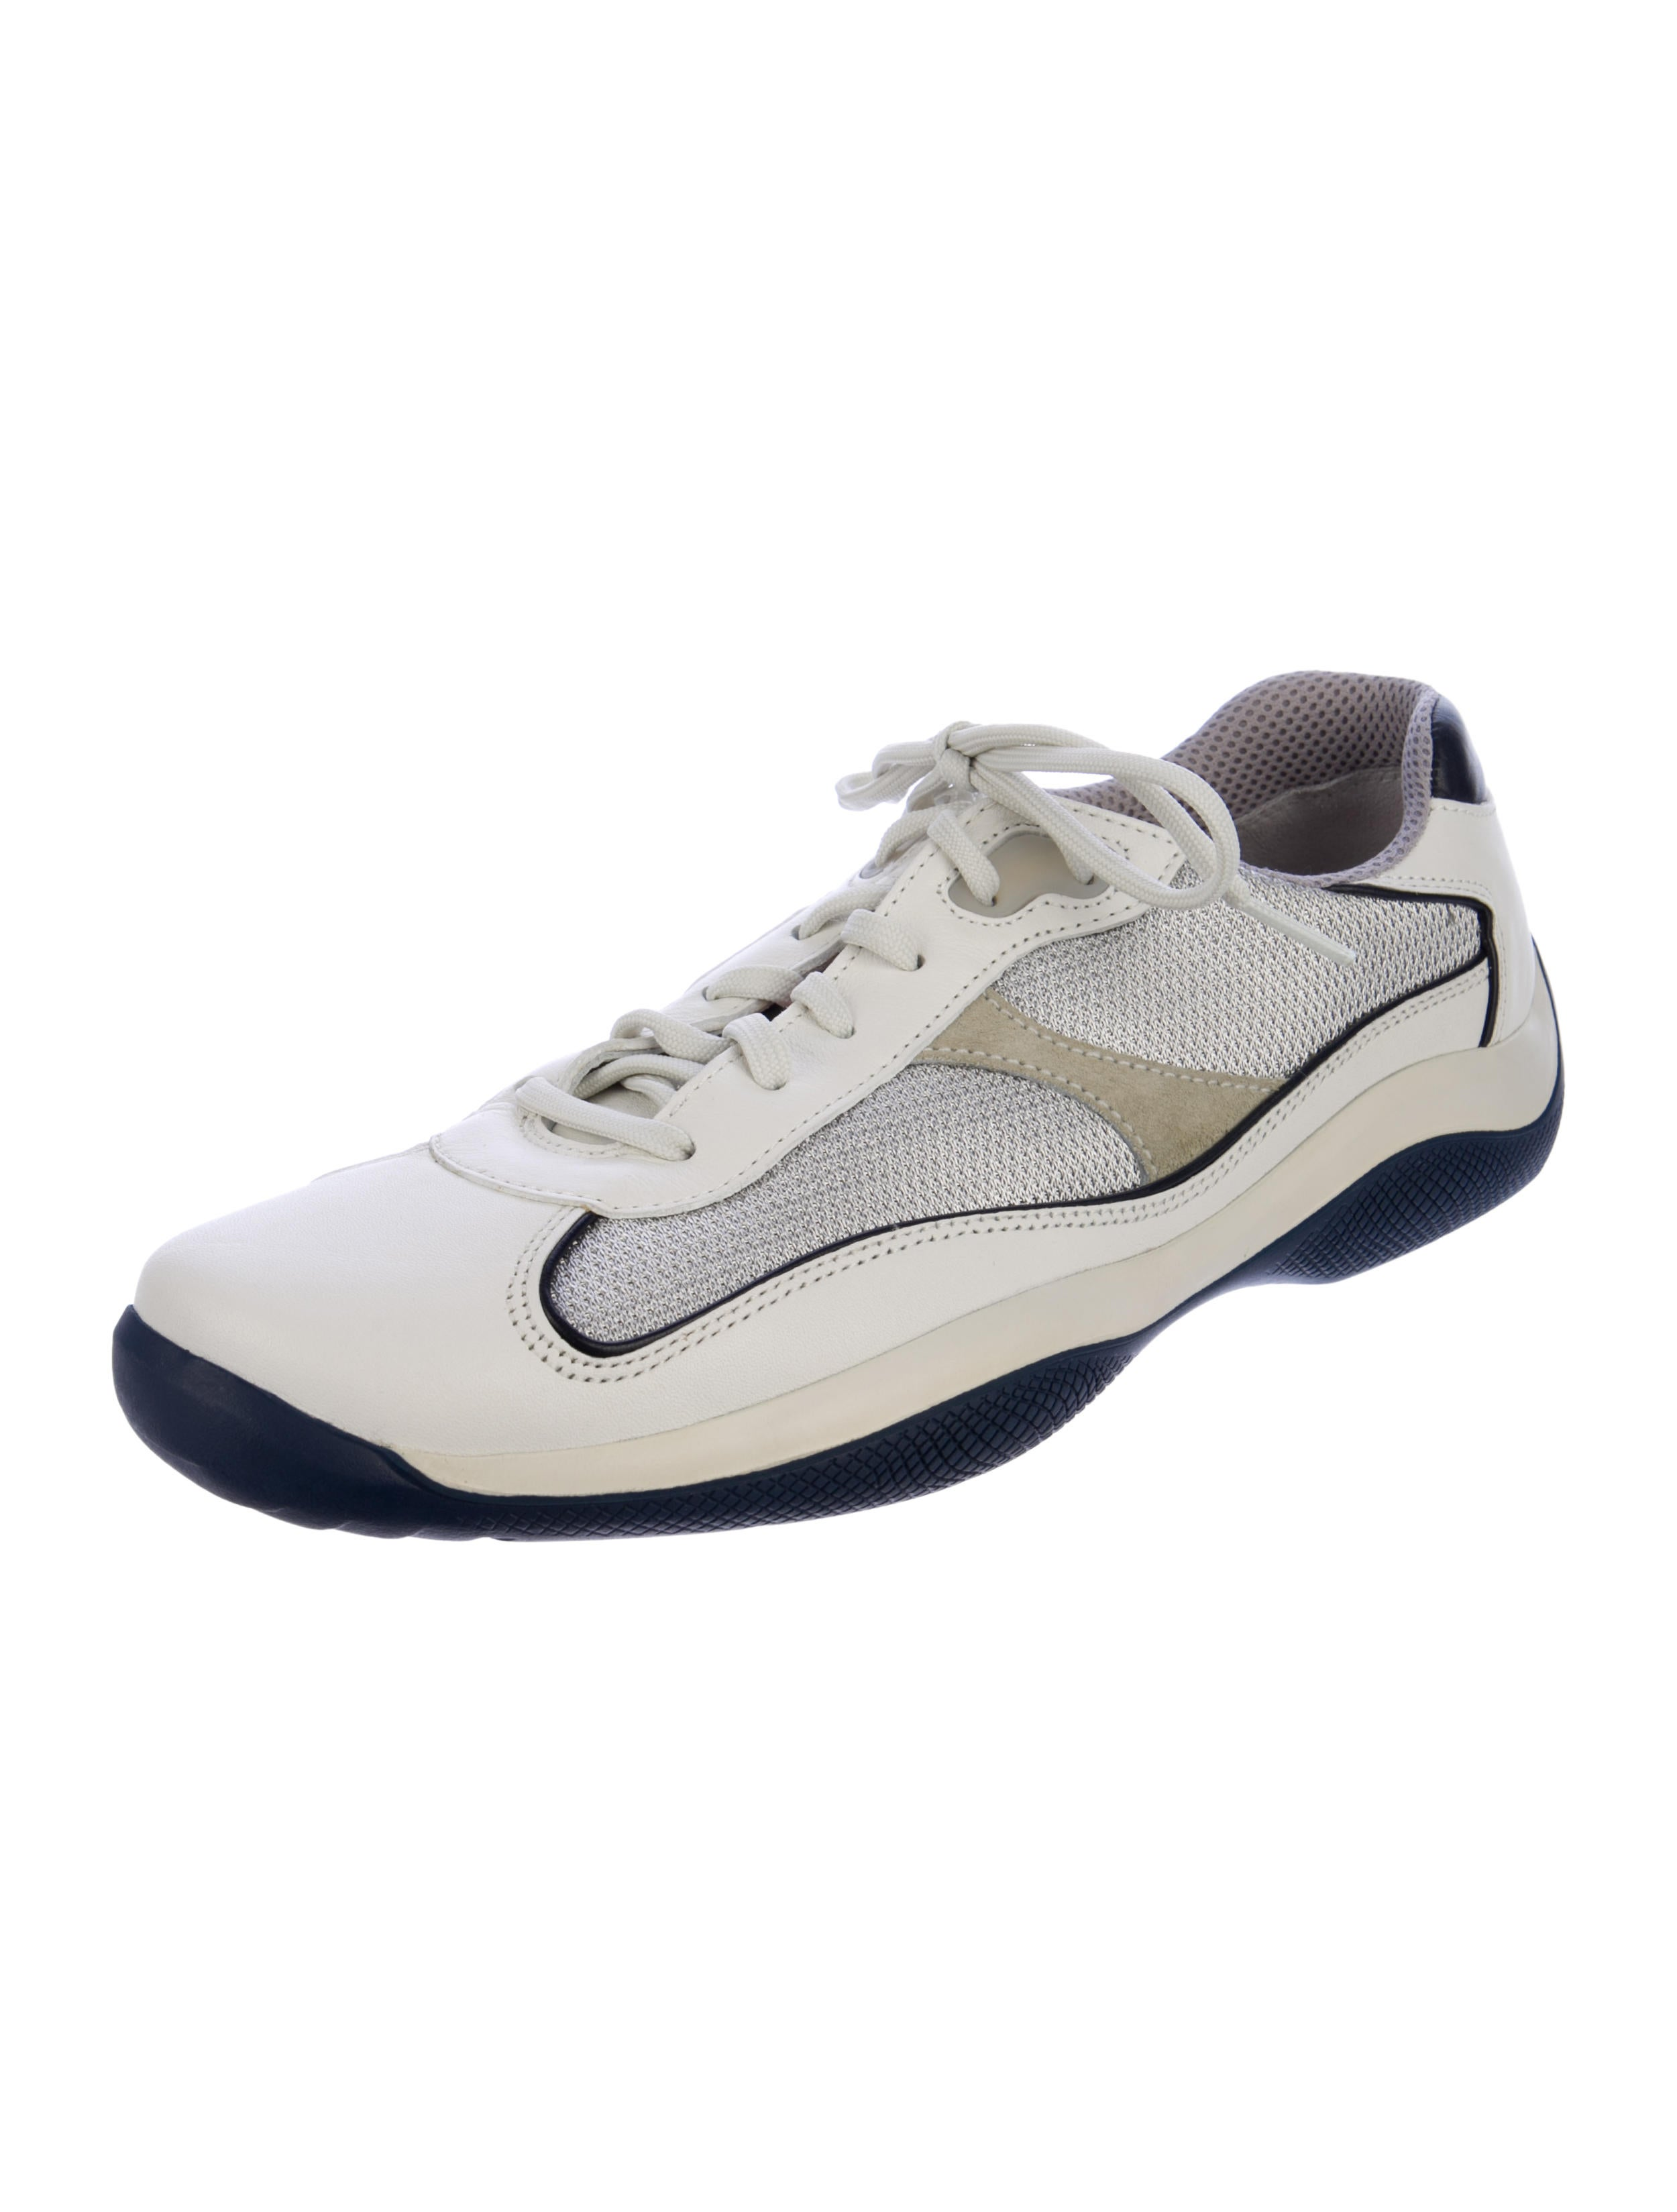 prada sport sneakers shoes wpr24994 the realreal